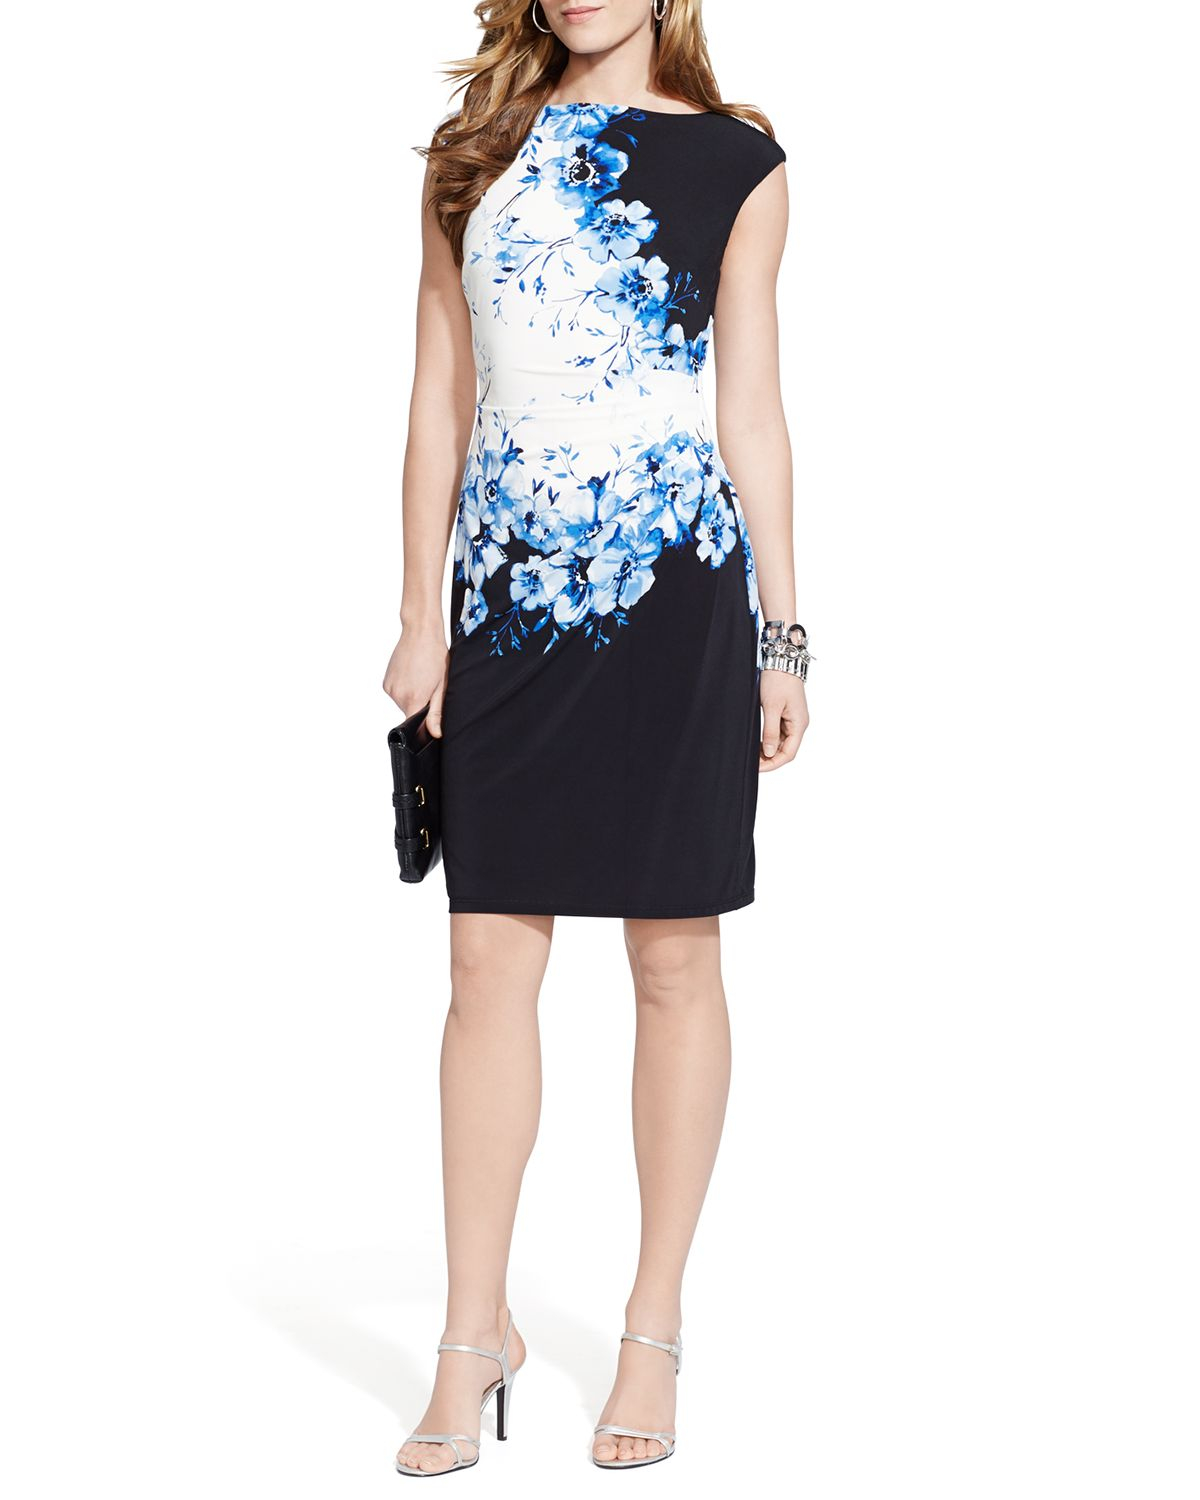 fa22aaef3a7 Ralph Lauren Lauren Dress - Cap Sleeve Floral Print Jersey in Blue ...